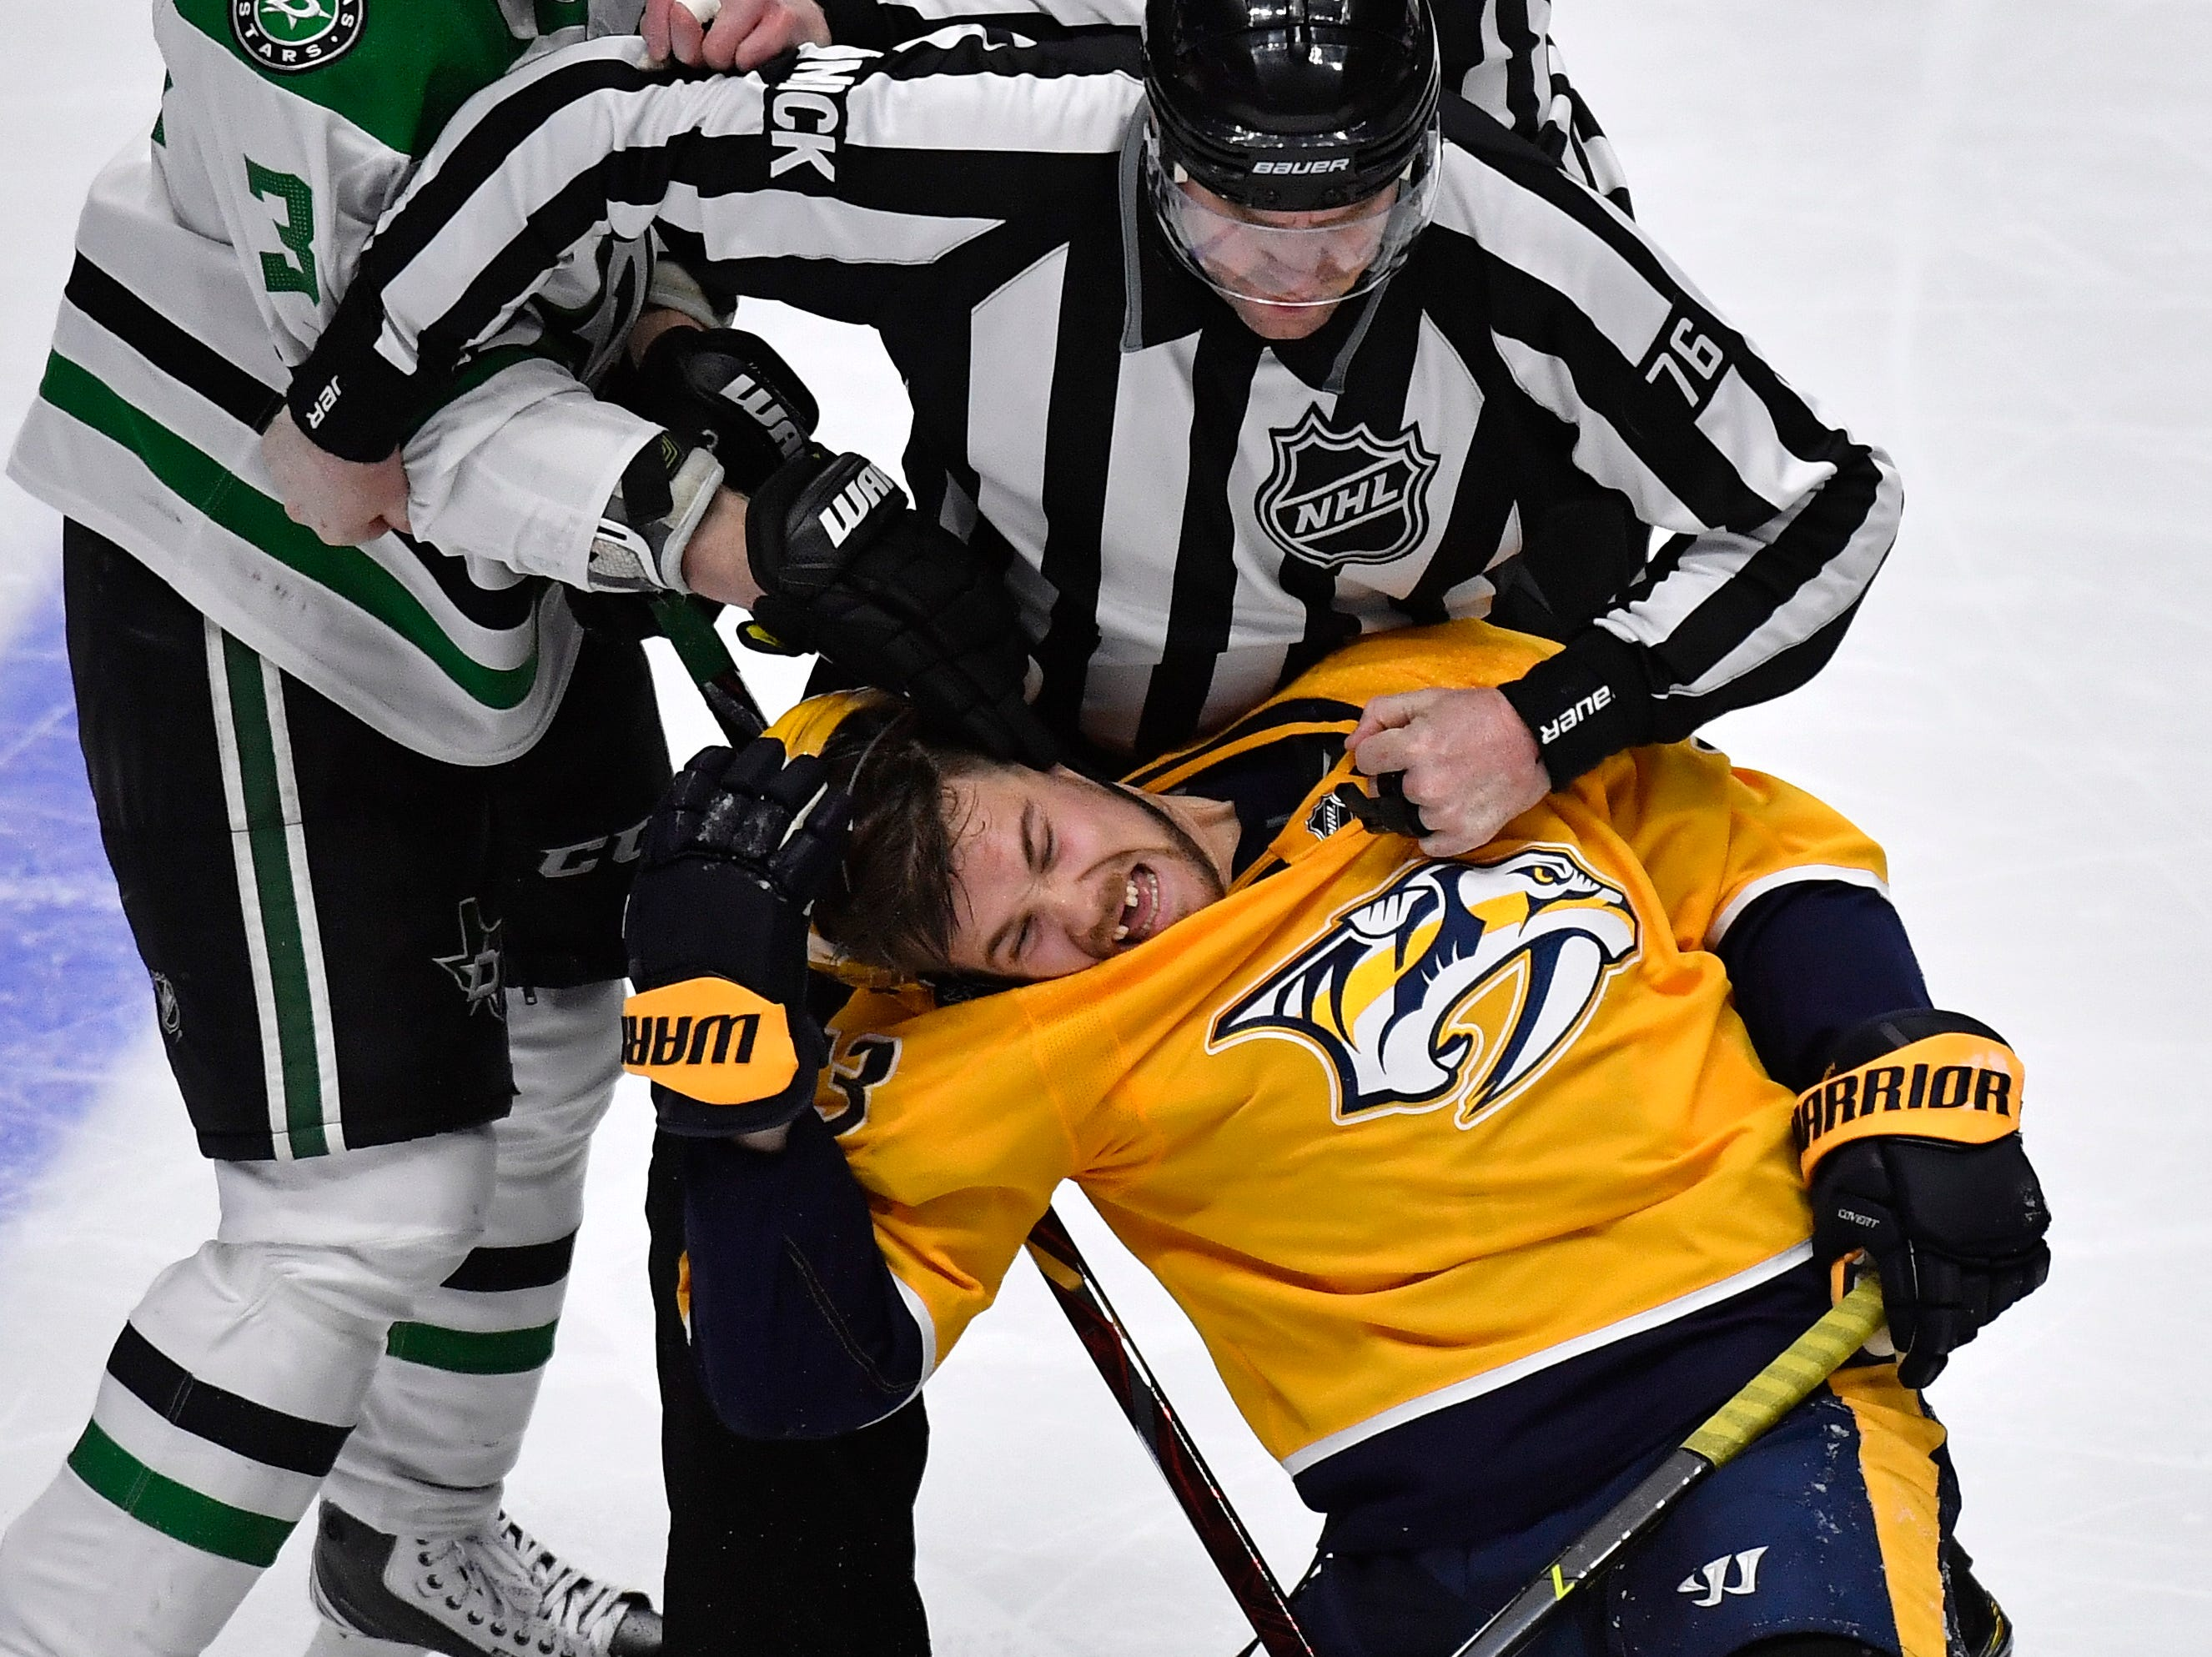 Referees separate Nashville Predators right wing Viktor Arvidsson (33) and Dallas Stars defenseman John Klingberg (3) during a fight in the second period of the divisional semifinal game at Bridgestone Arena in Nashville, Tenn., Wednesday, April 10, 2019.